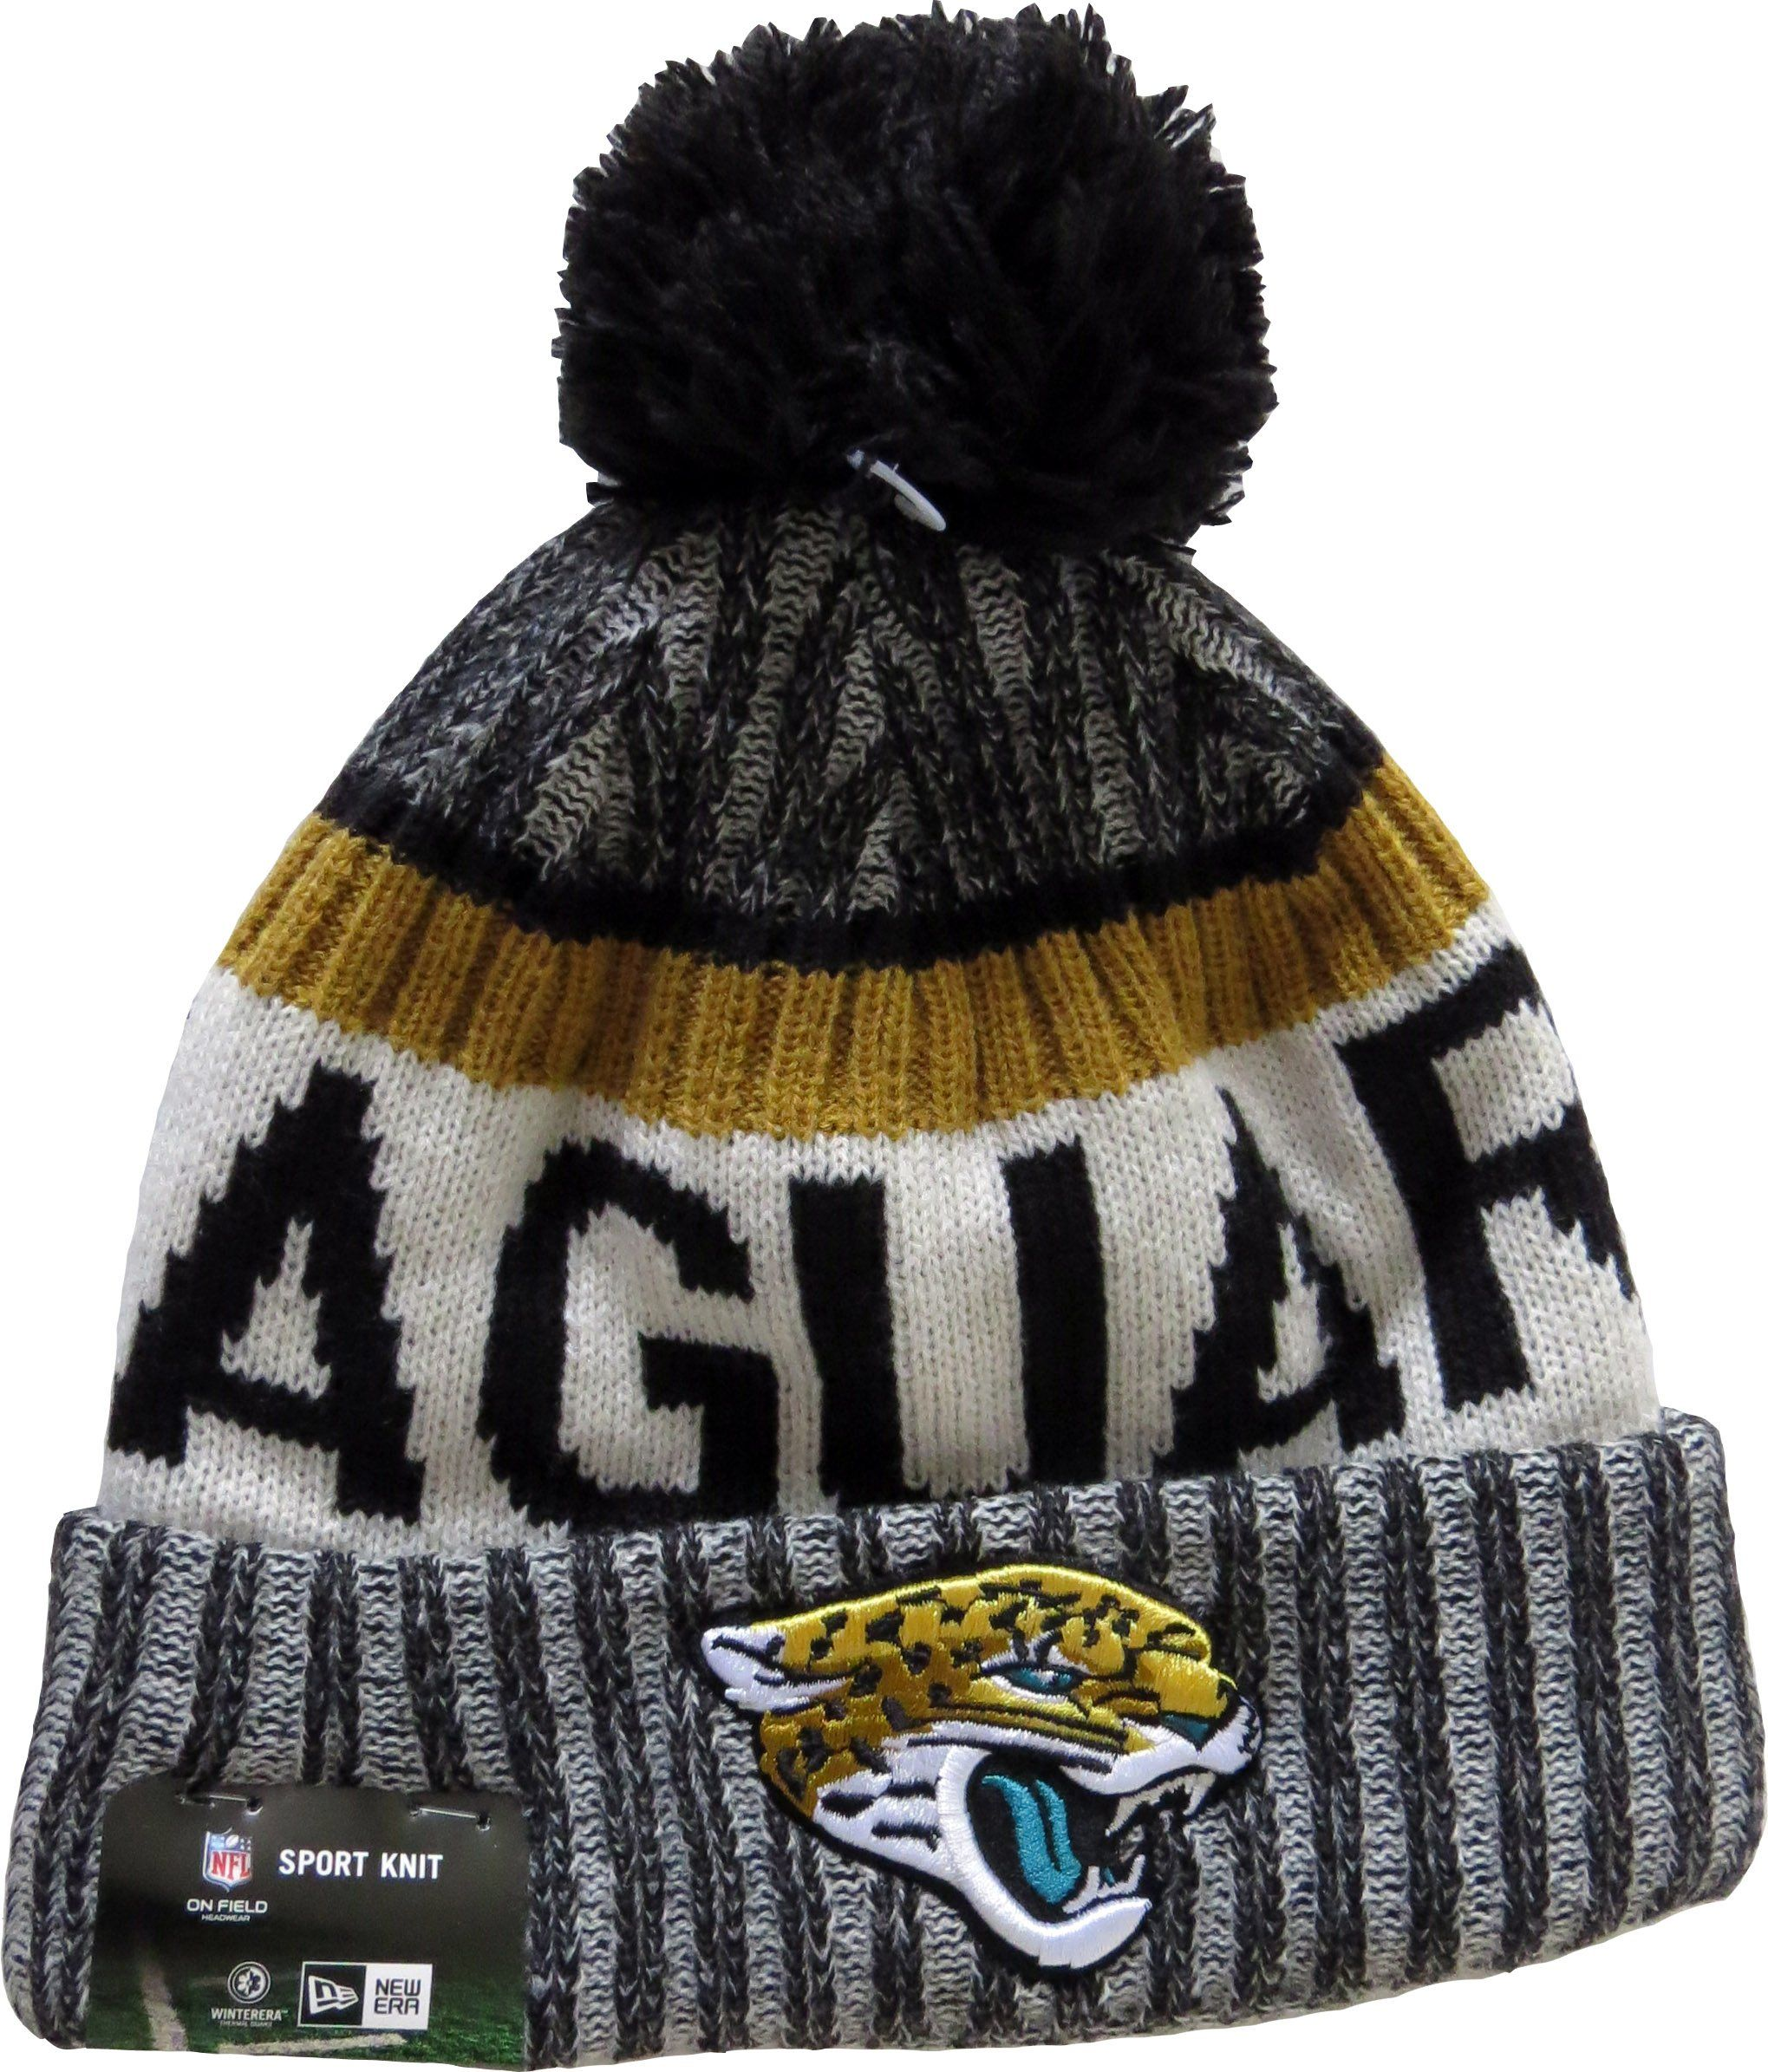 bae3e8d743b Jacksonville Jaguars New Era NFL 2017 On Field Sport Knit Bobble Hat. Team  colours with